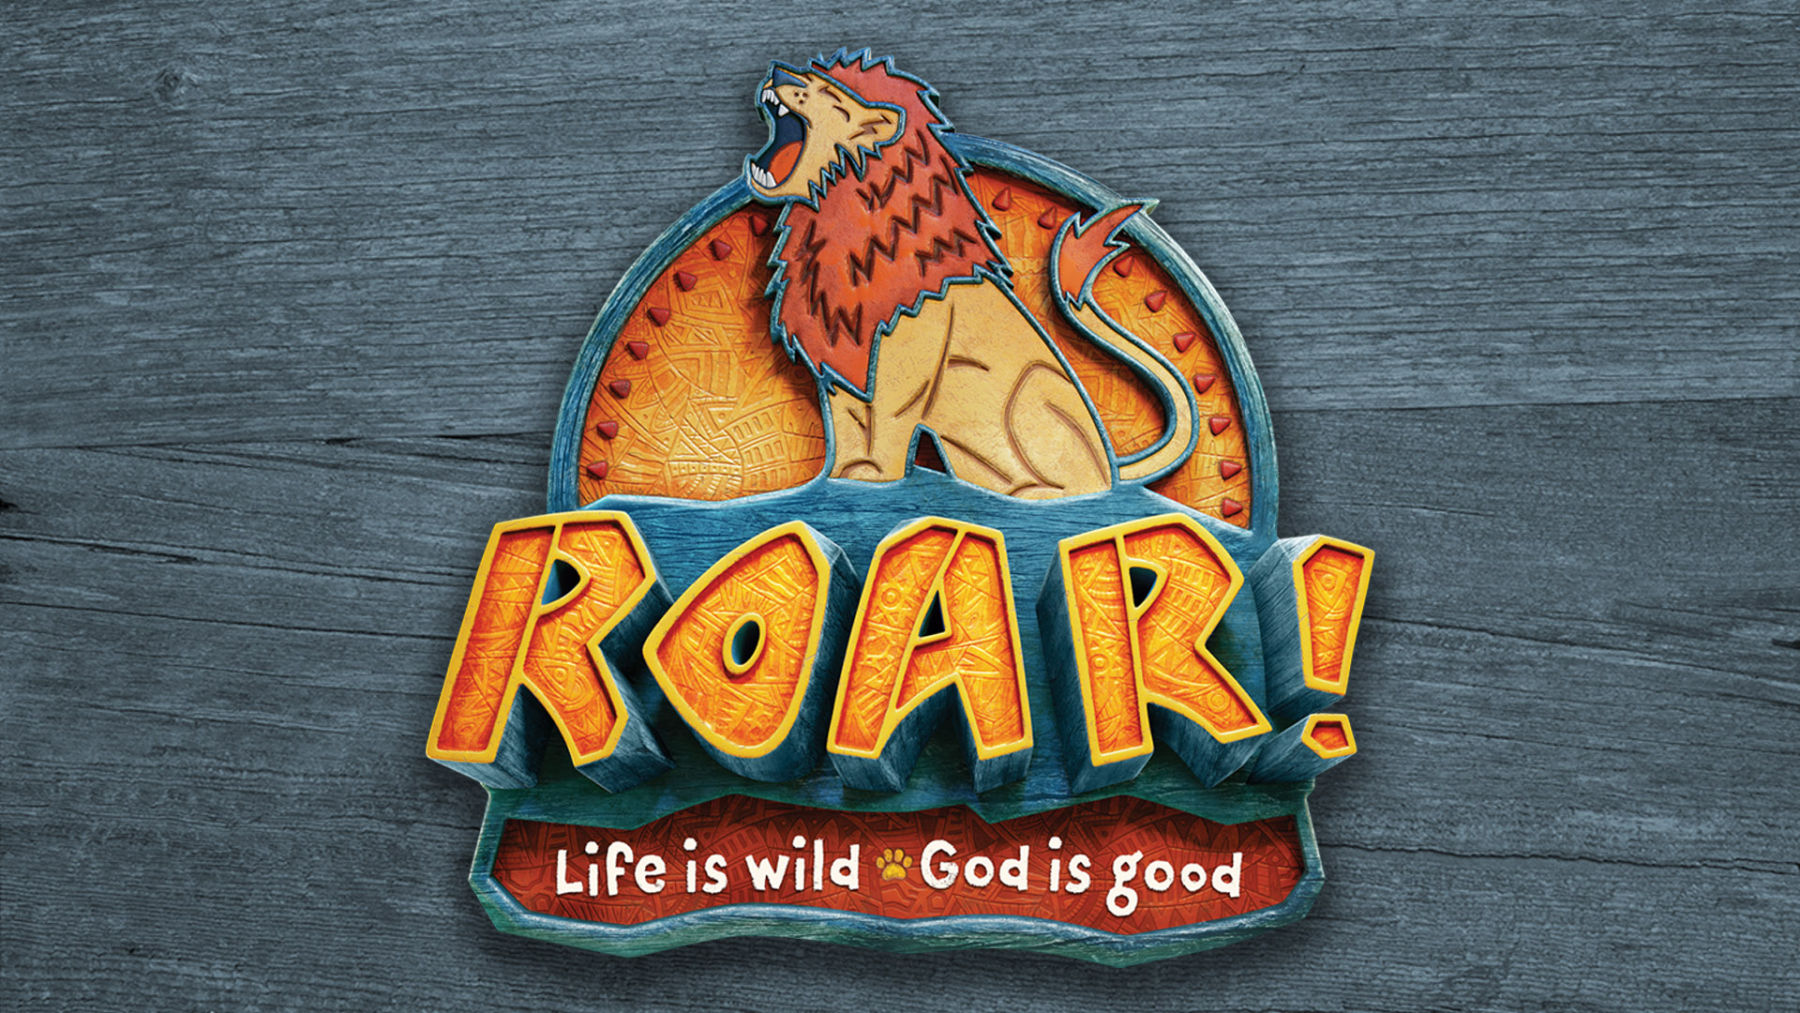 VBS - Living Word Lutheran Church